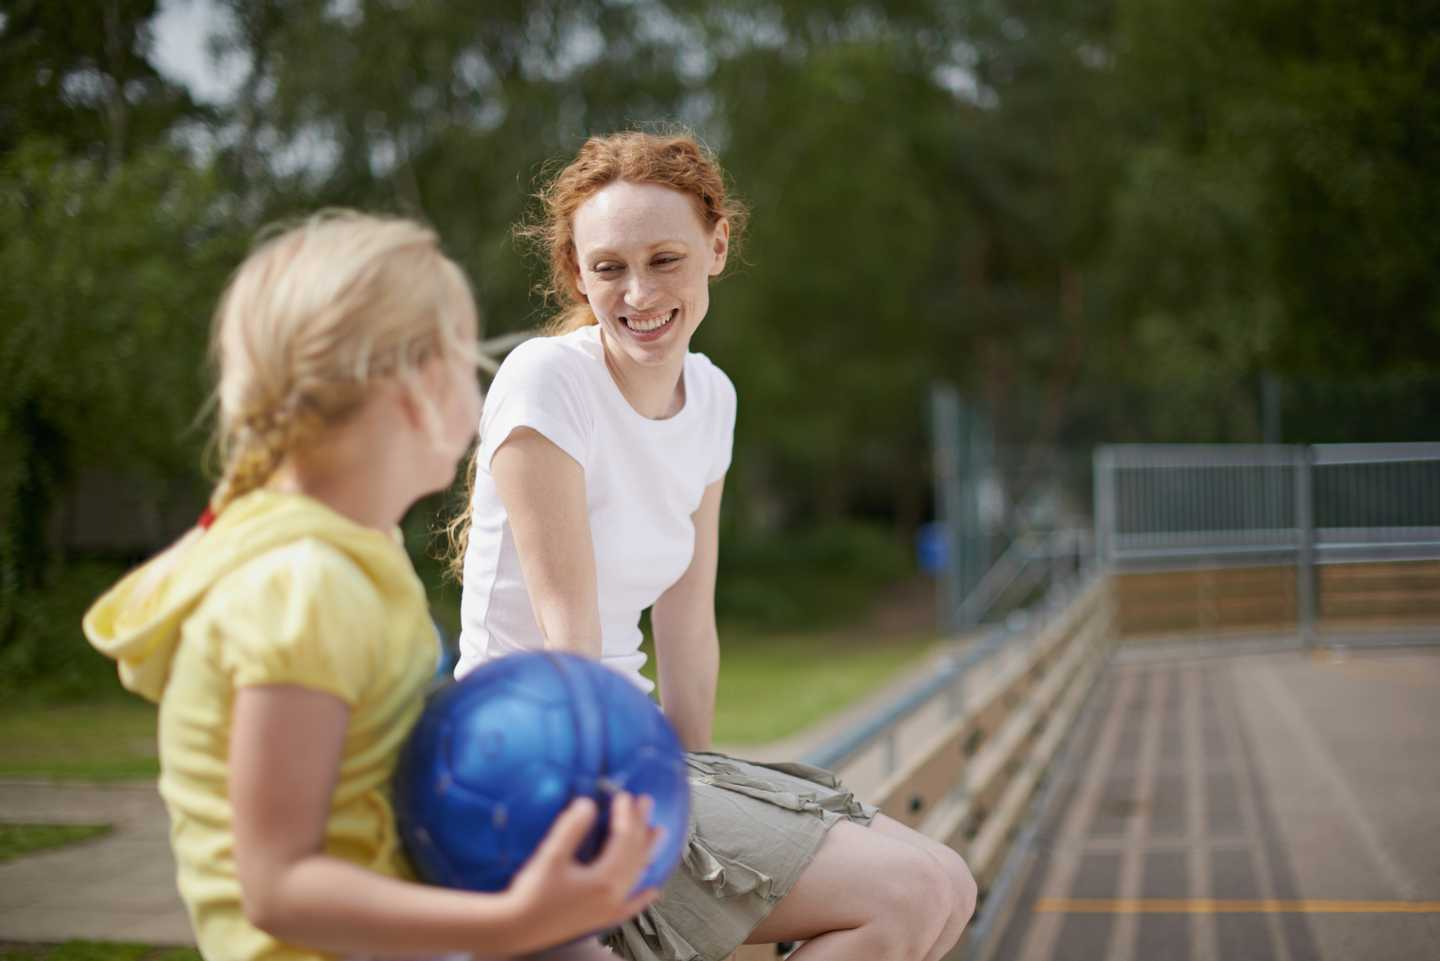 Two girls sitting in the sports court